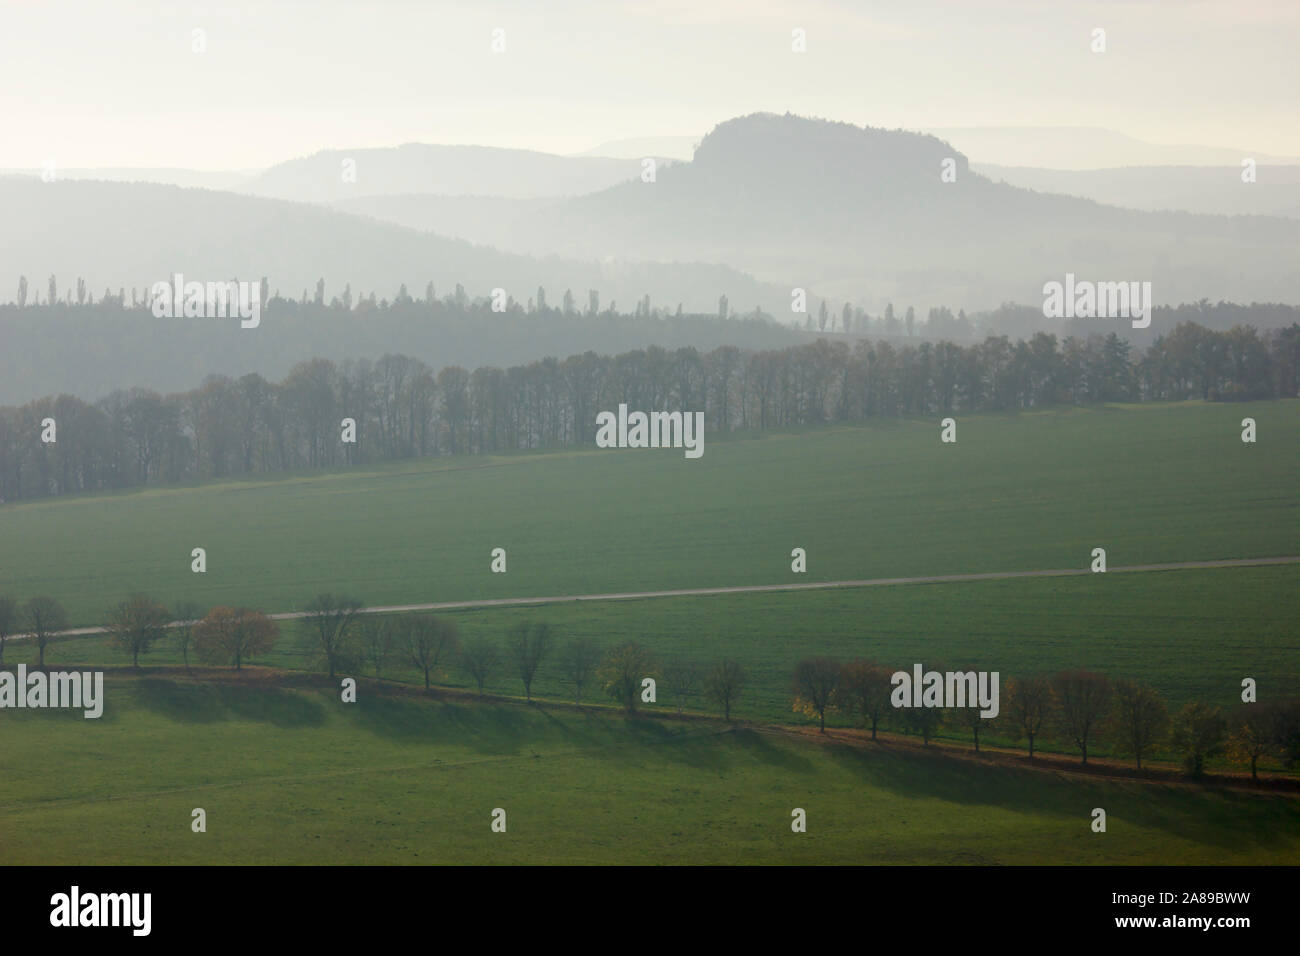 View from Rauenstein to Pfaffenstein, autumn, Sächsische Schweiz, Germany Stock Photo